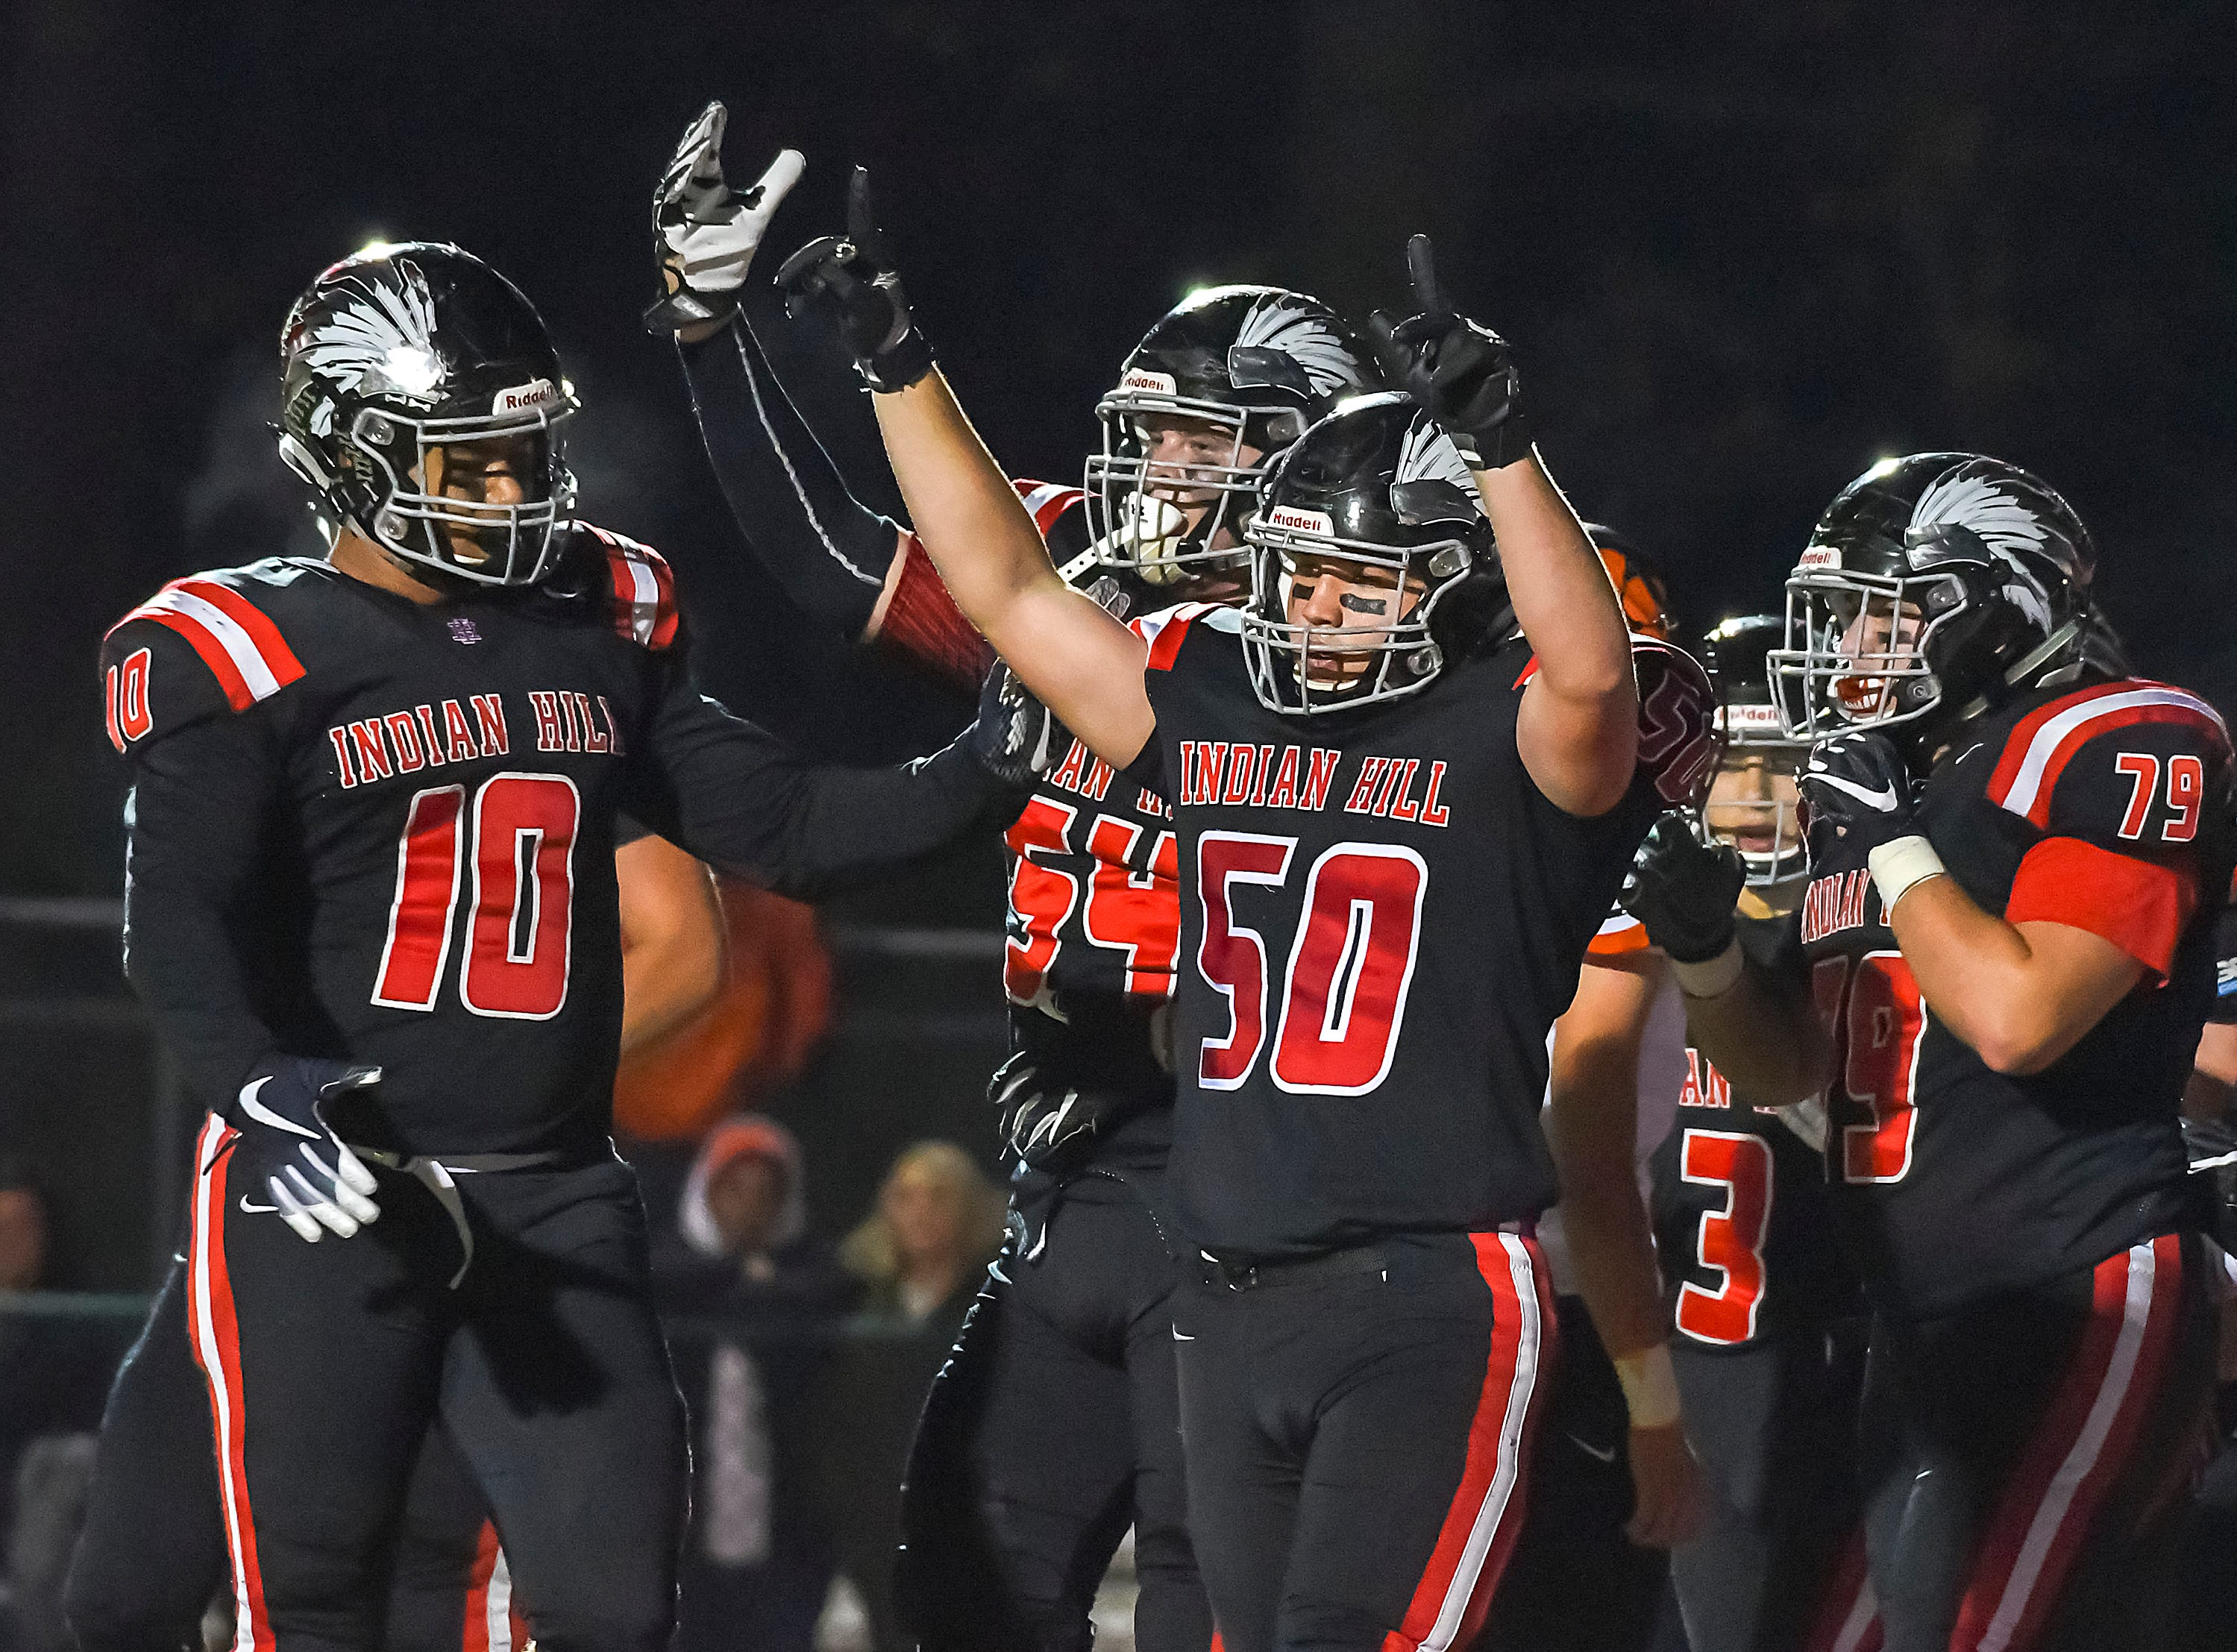 Indian Hill olayers celebrate after a Braves touchdoen against Waverly in the OHSAA D4 Region 16 Playoffs at Indian Hill High School, Saturday, Nov. 3, 2018